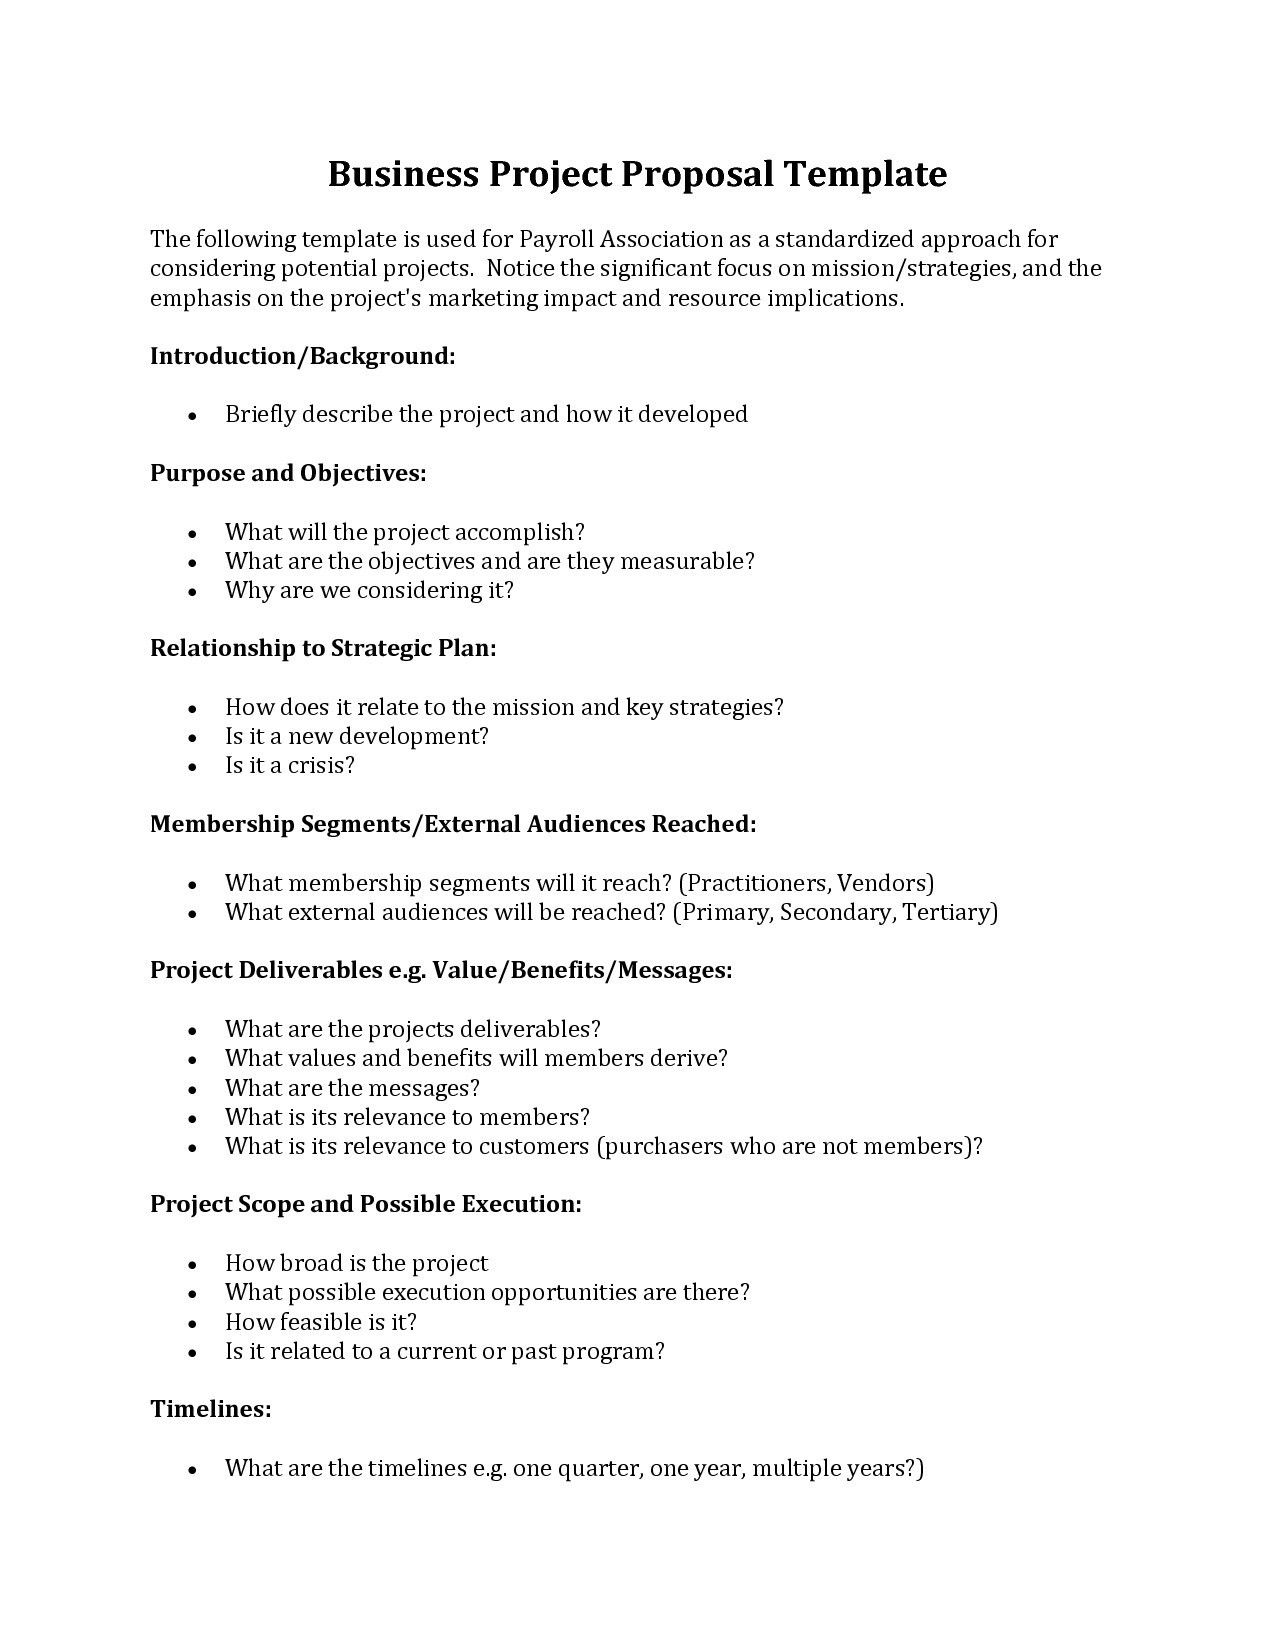 Fresh Business Project Proposal Example Best Example Of Business